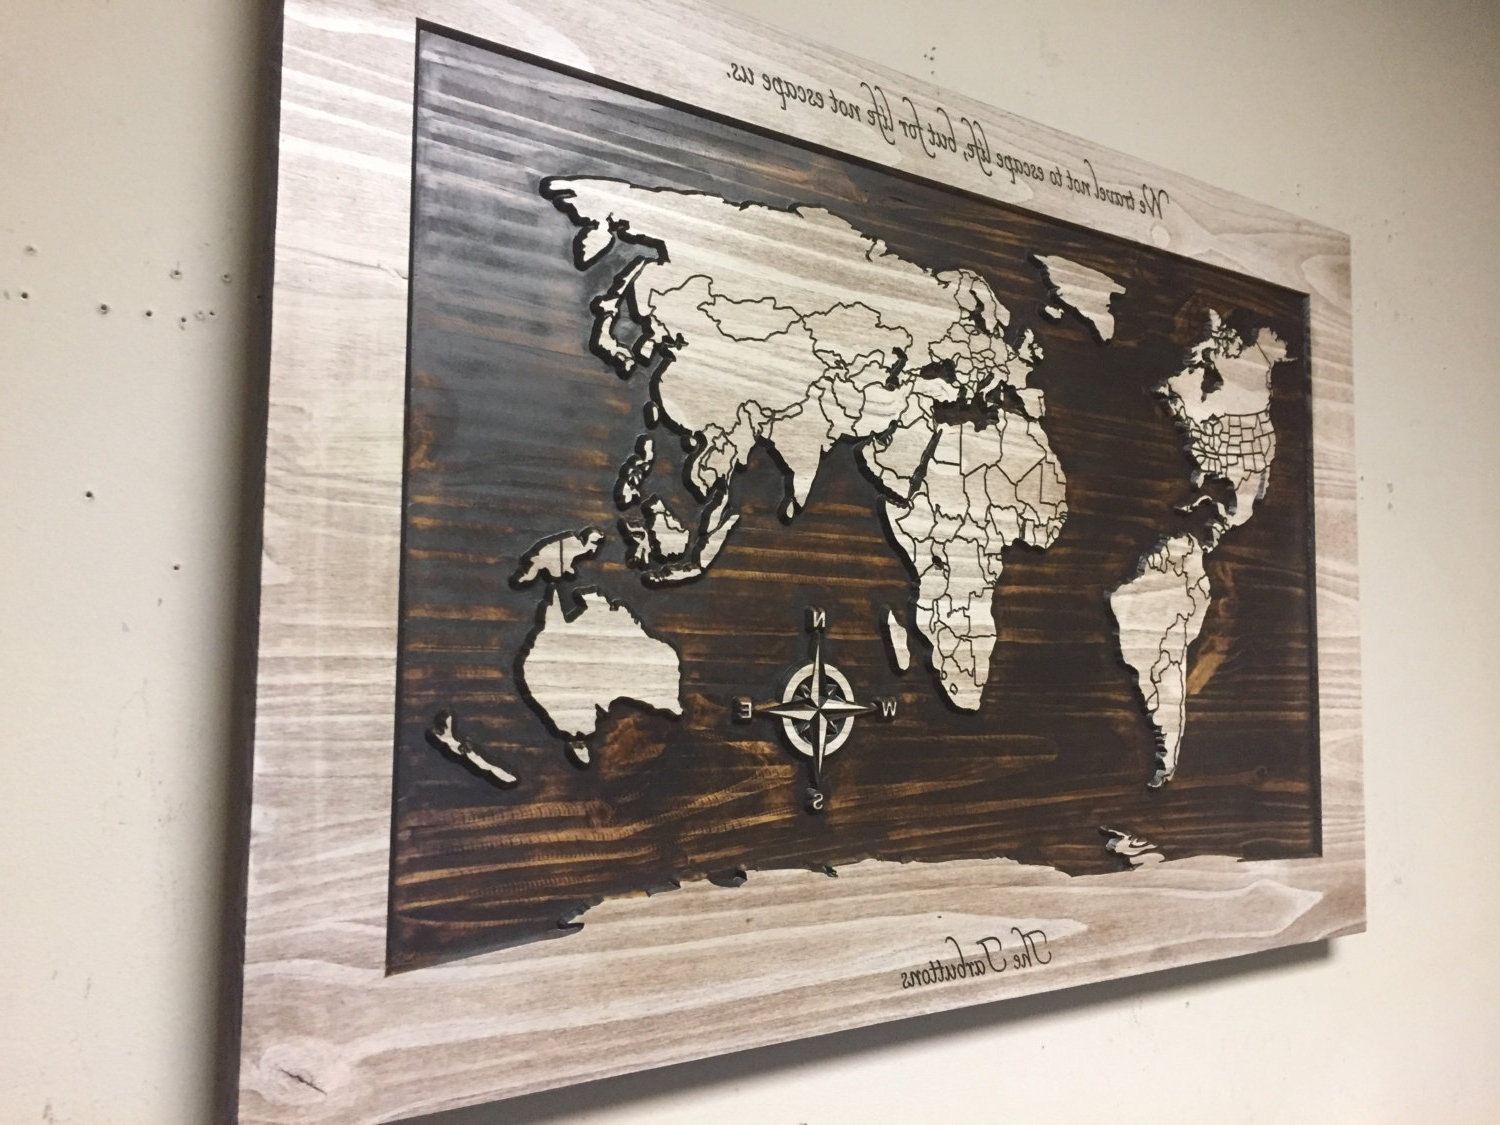 Well Liked Wooden World Map Wall Art Regarding Wood Wall Art, World Map Wall Art, Carved Wooden World Map With (View 10 of 15)